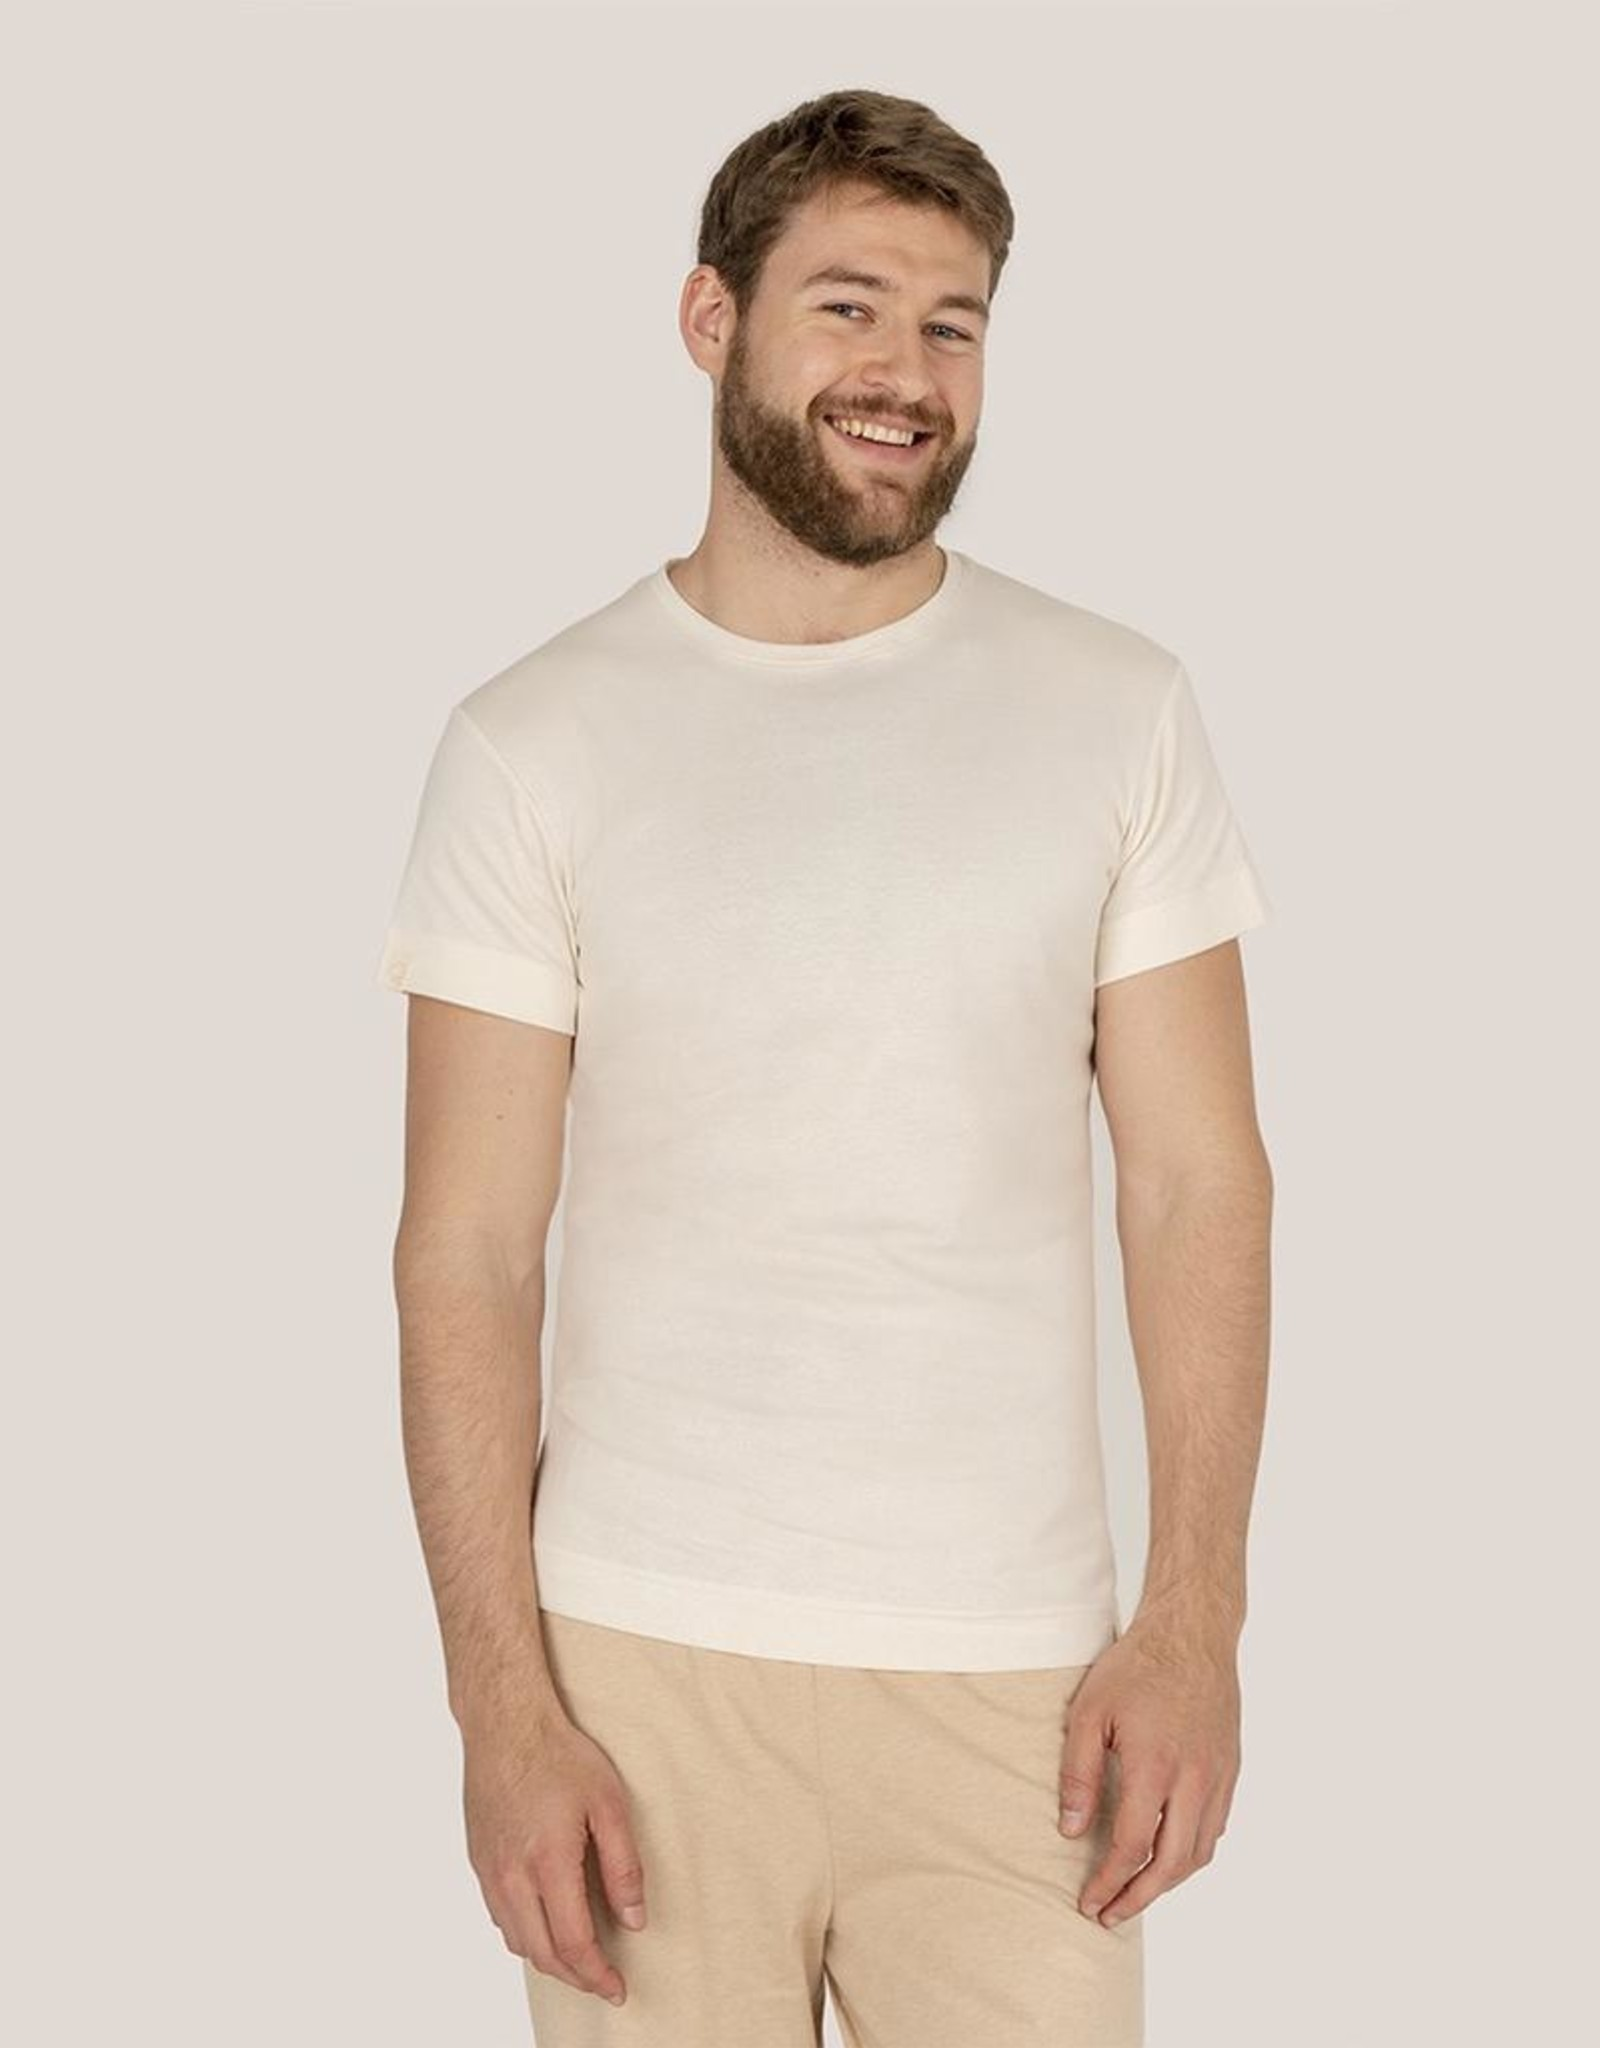 Fitted t-shirt with short sleeves from Organic Cotton Colours